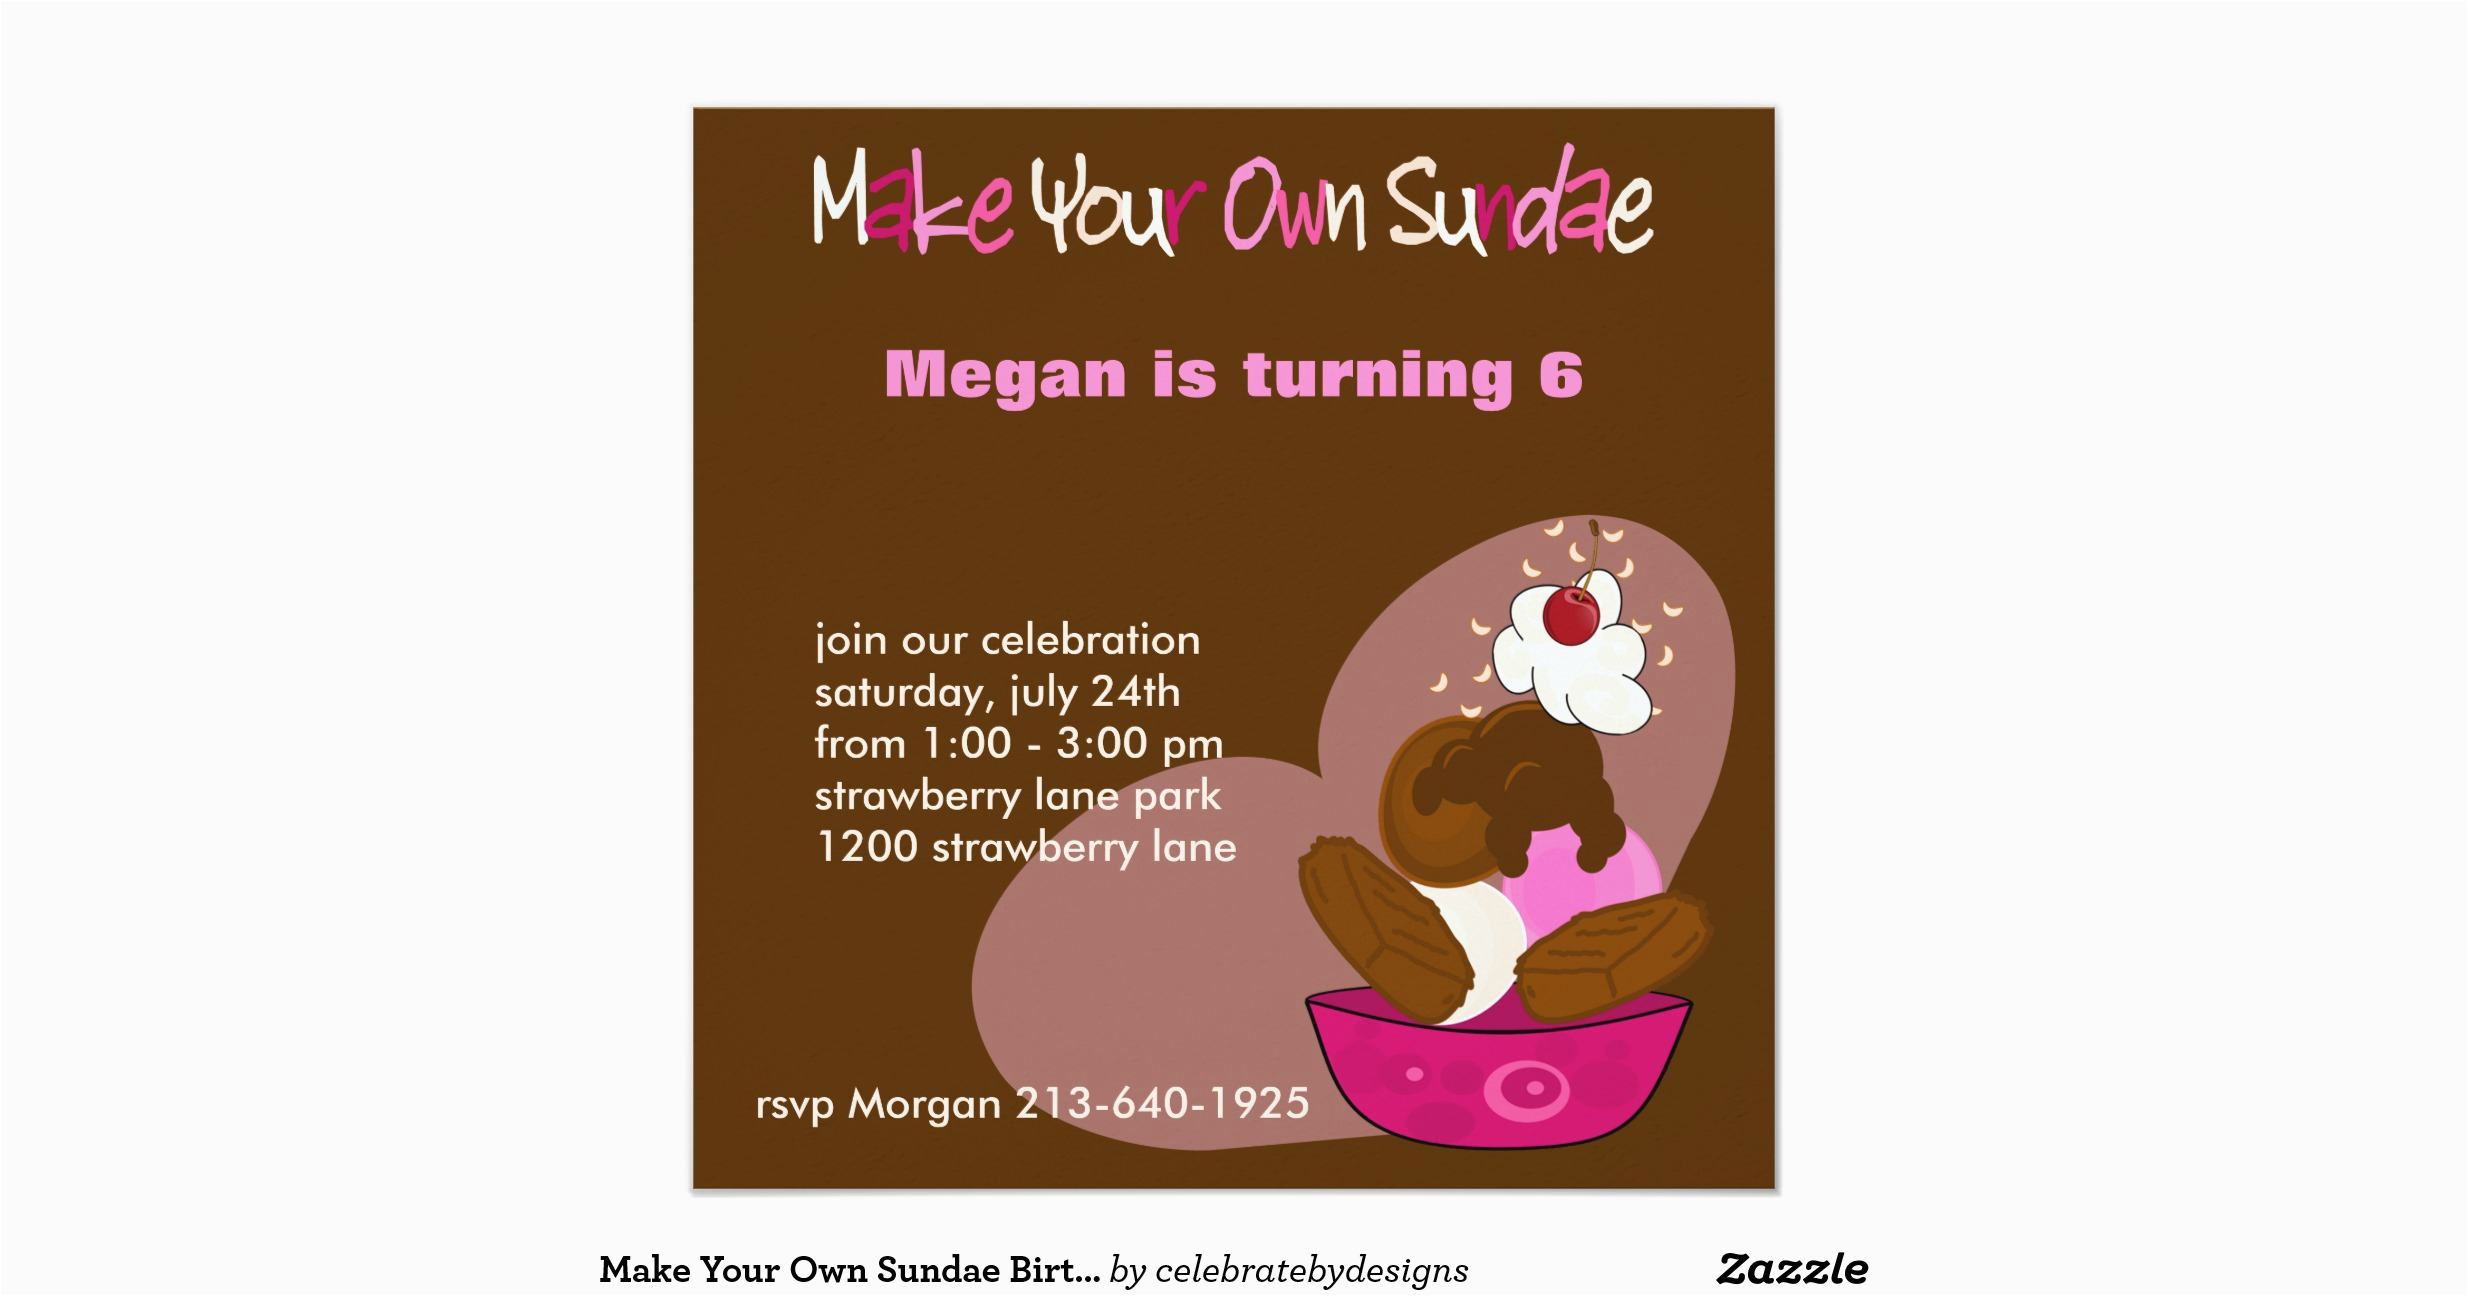 make your own sundae birthday invitation 161341624850405488